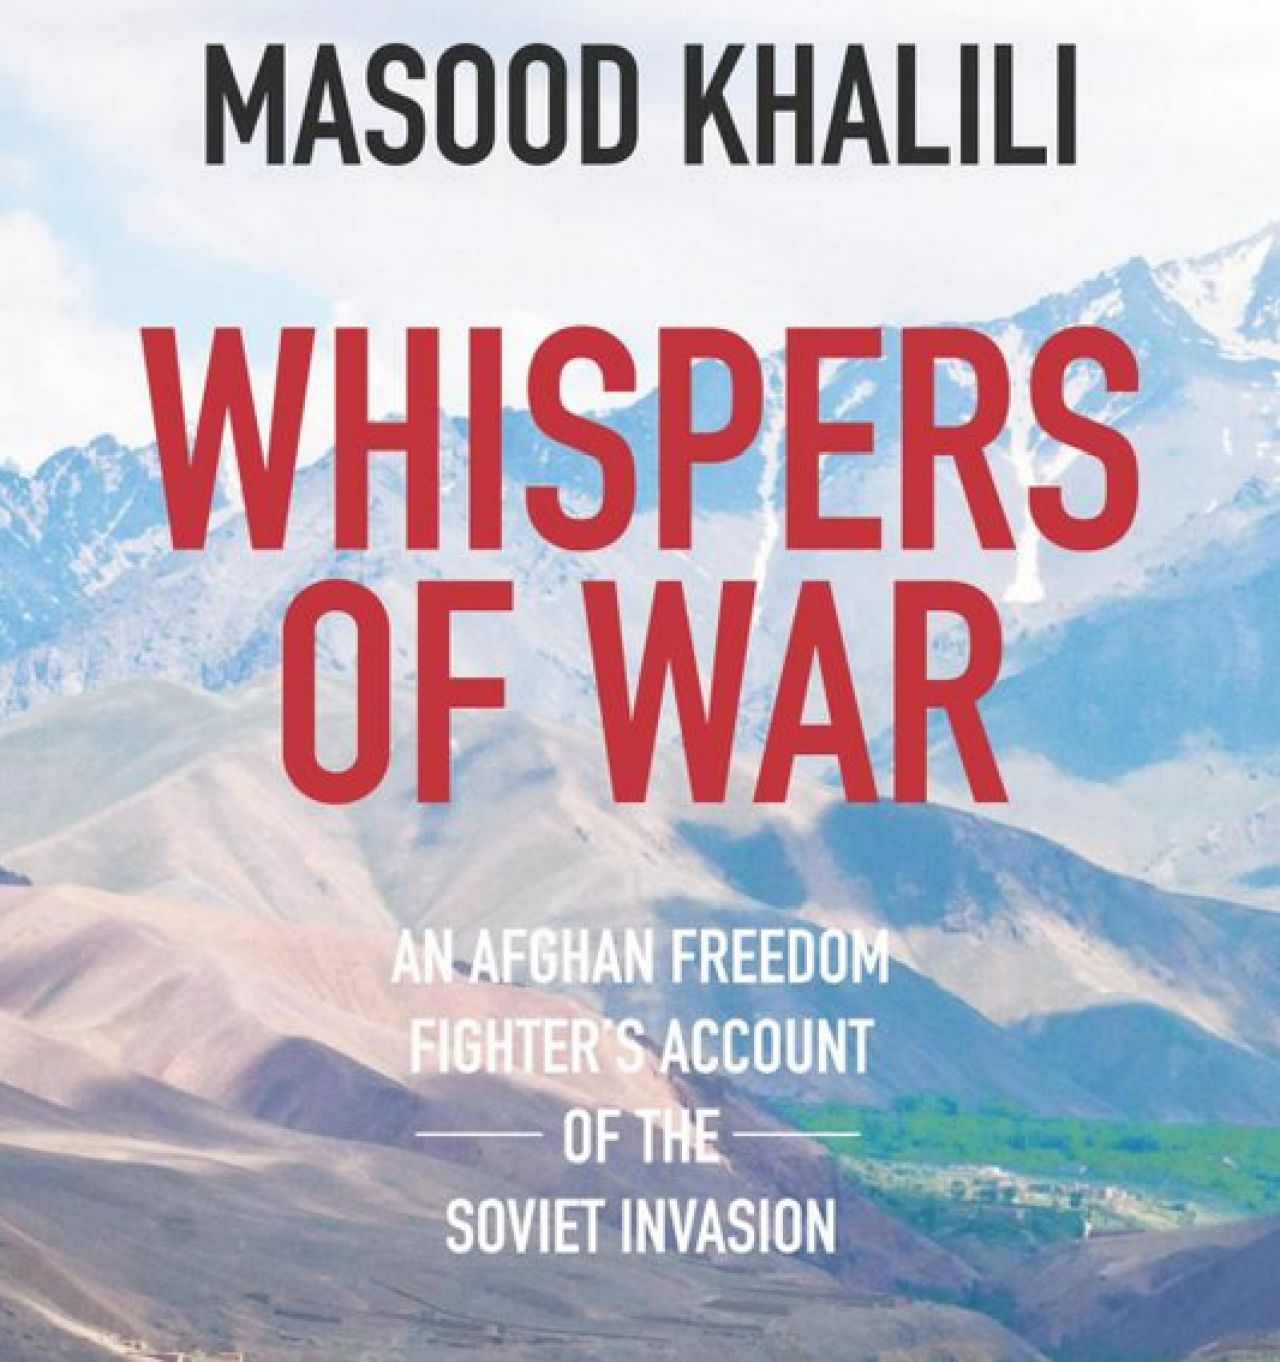 Cover of Masood Khalili's Whispers of War. (www.masoodkhalili.com)